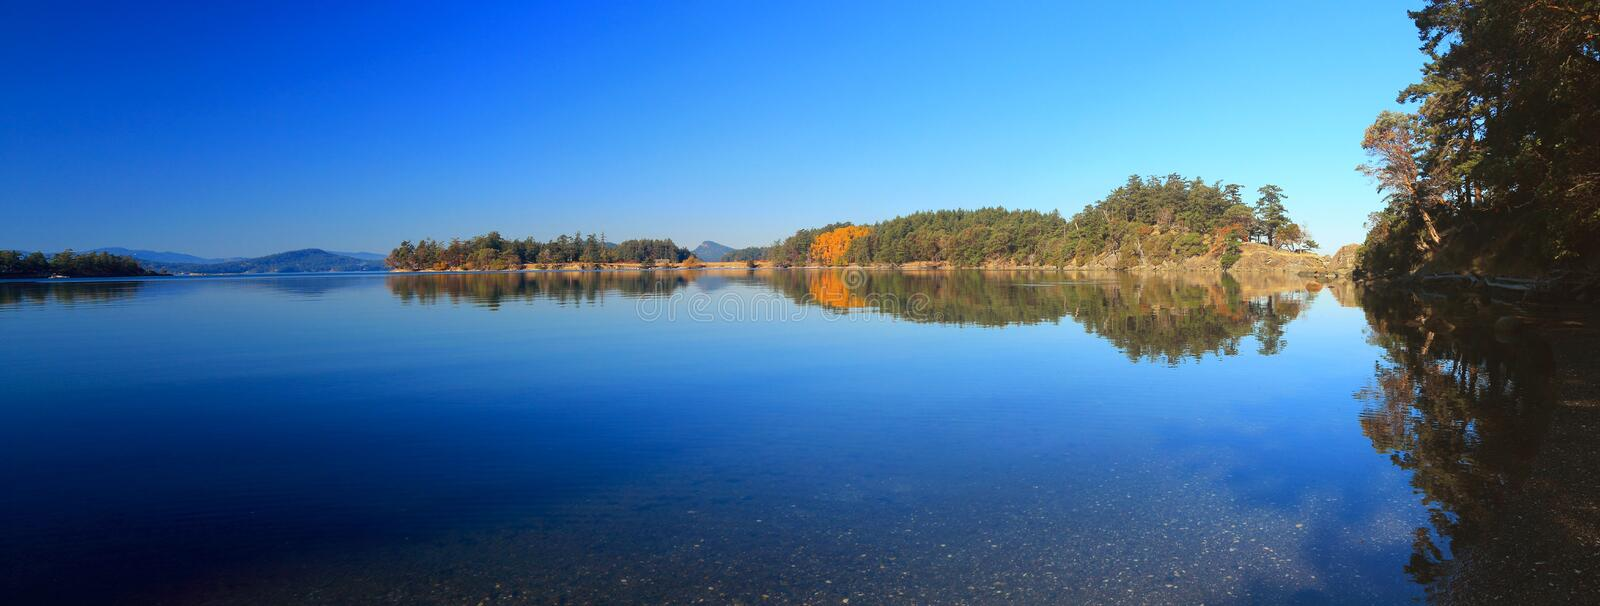 Calm Fall Day at Winter Cove on Saturna Island, Gulf Islands National Park, British Columbia, Canada stock image